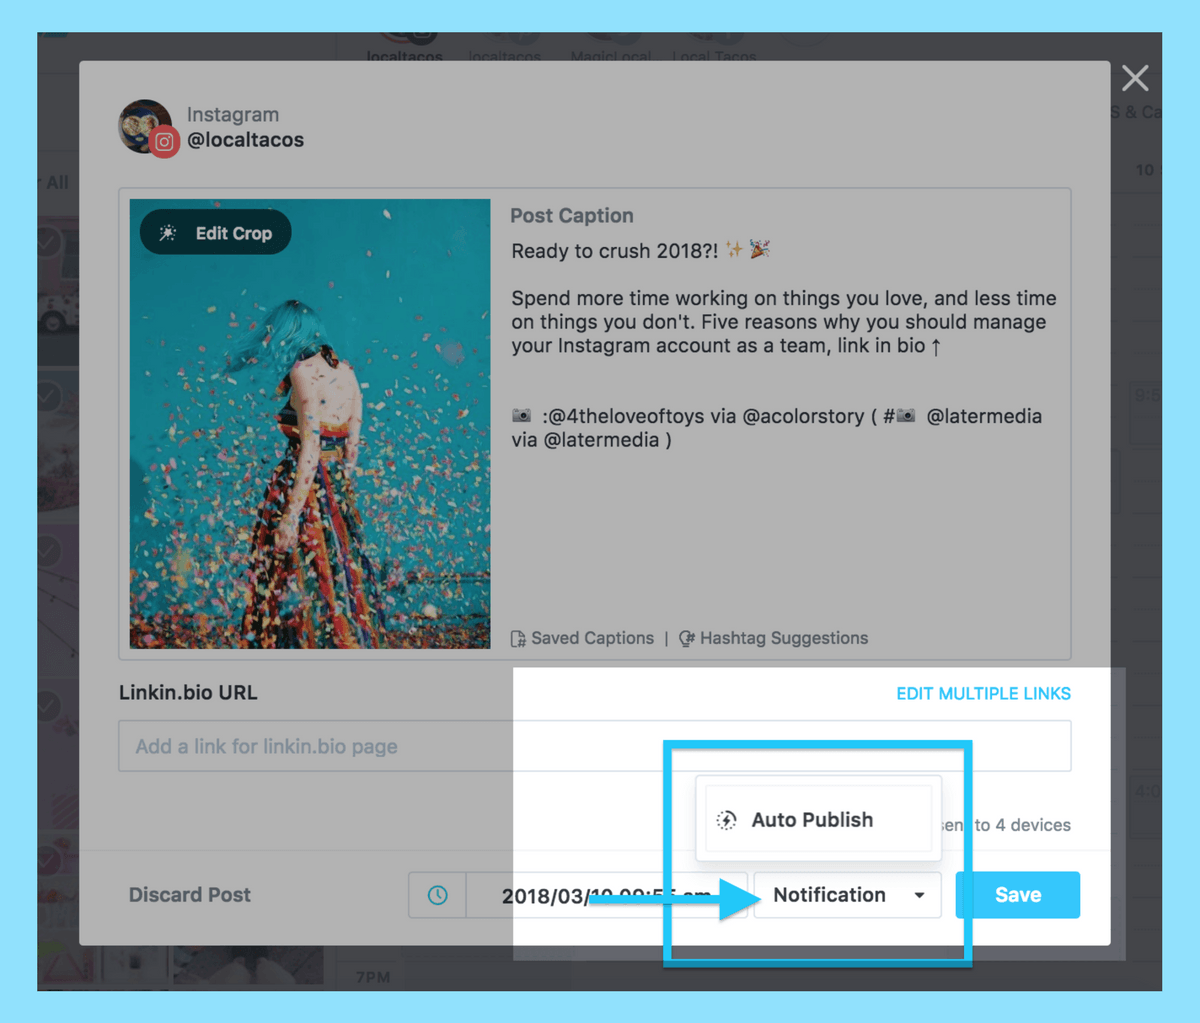 Autopublishing in Later allows users to publish single photos directly to Instagram